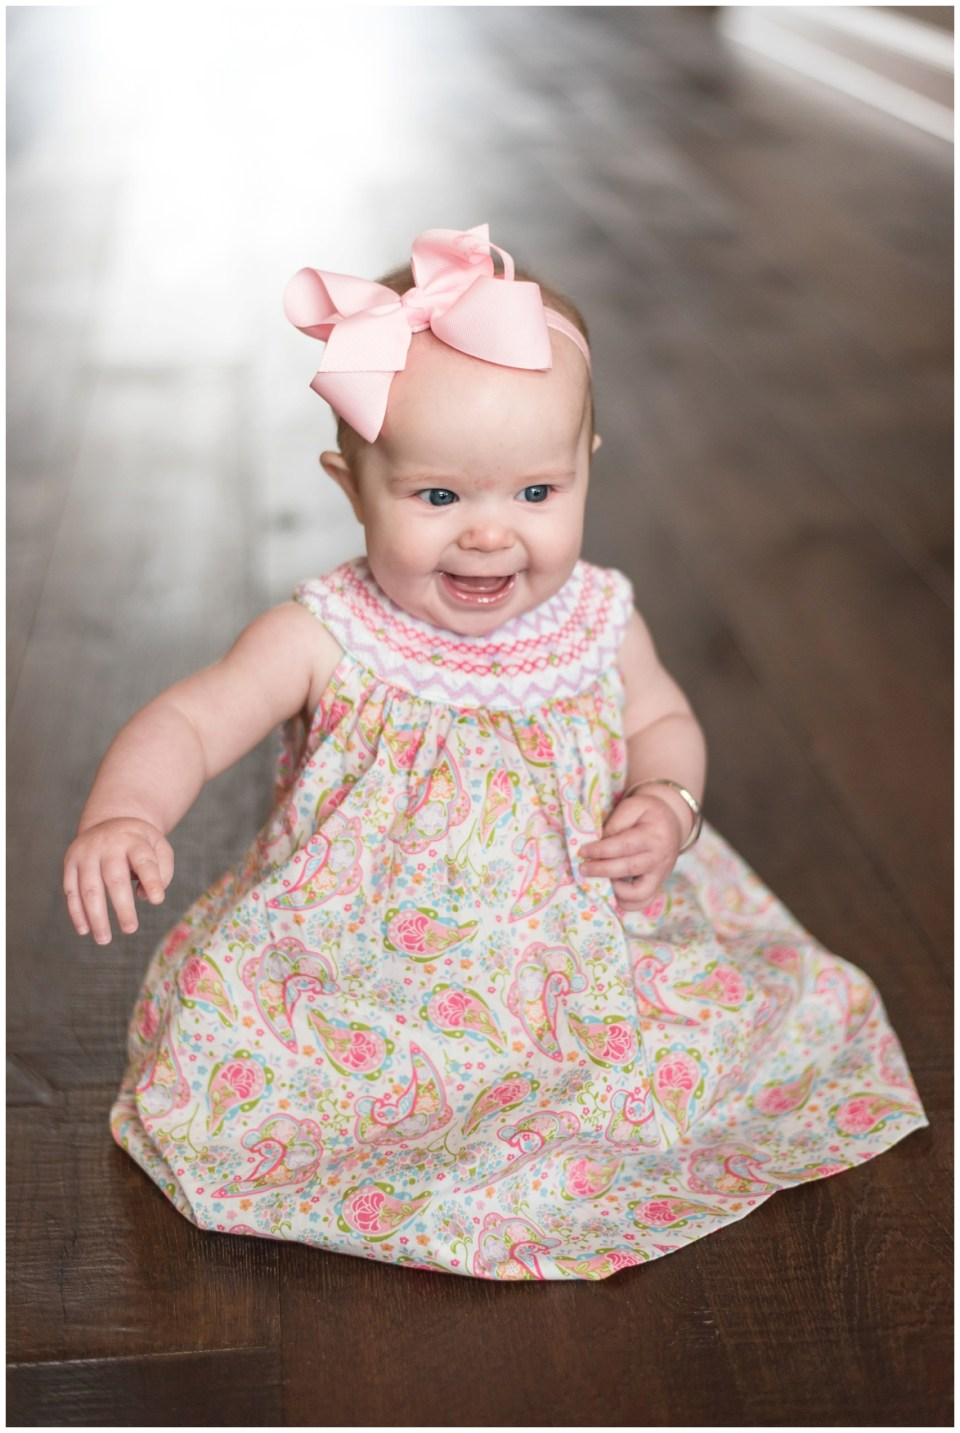 Kingwood family photographer - portrait session with 6 month old baby girl and family